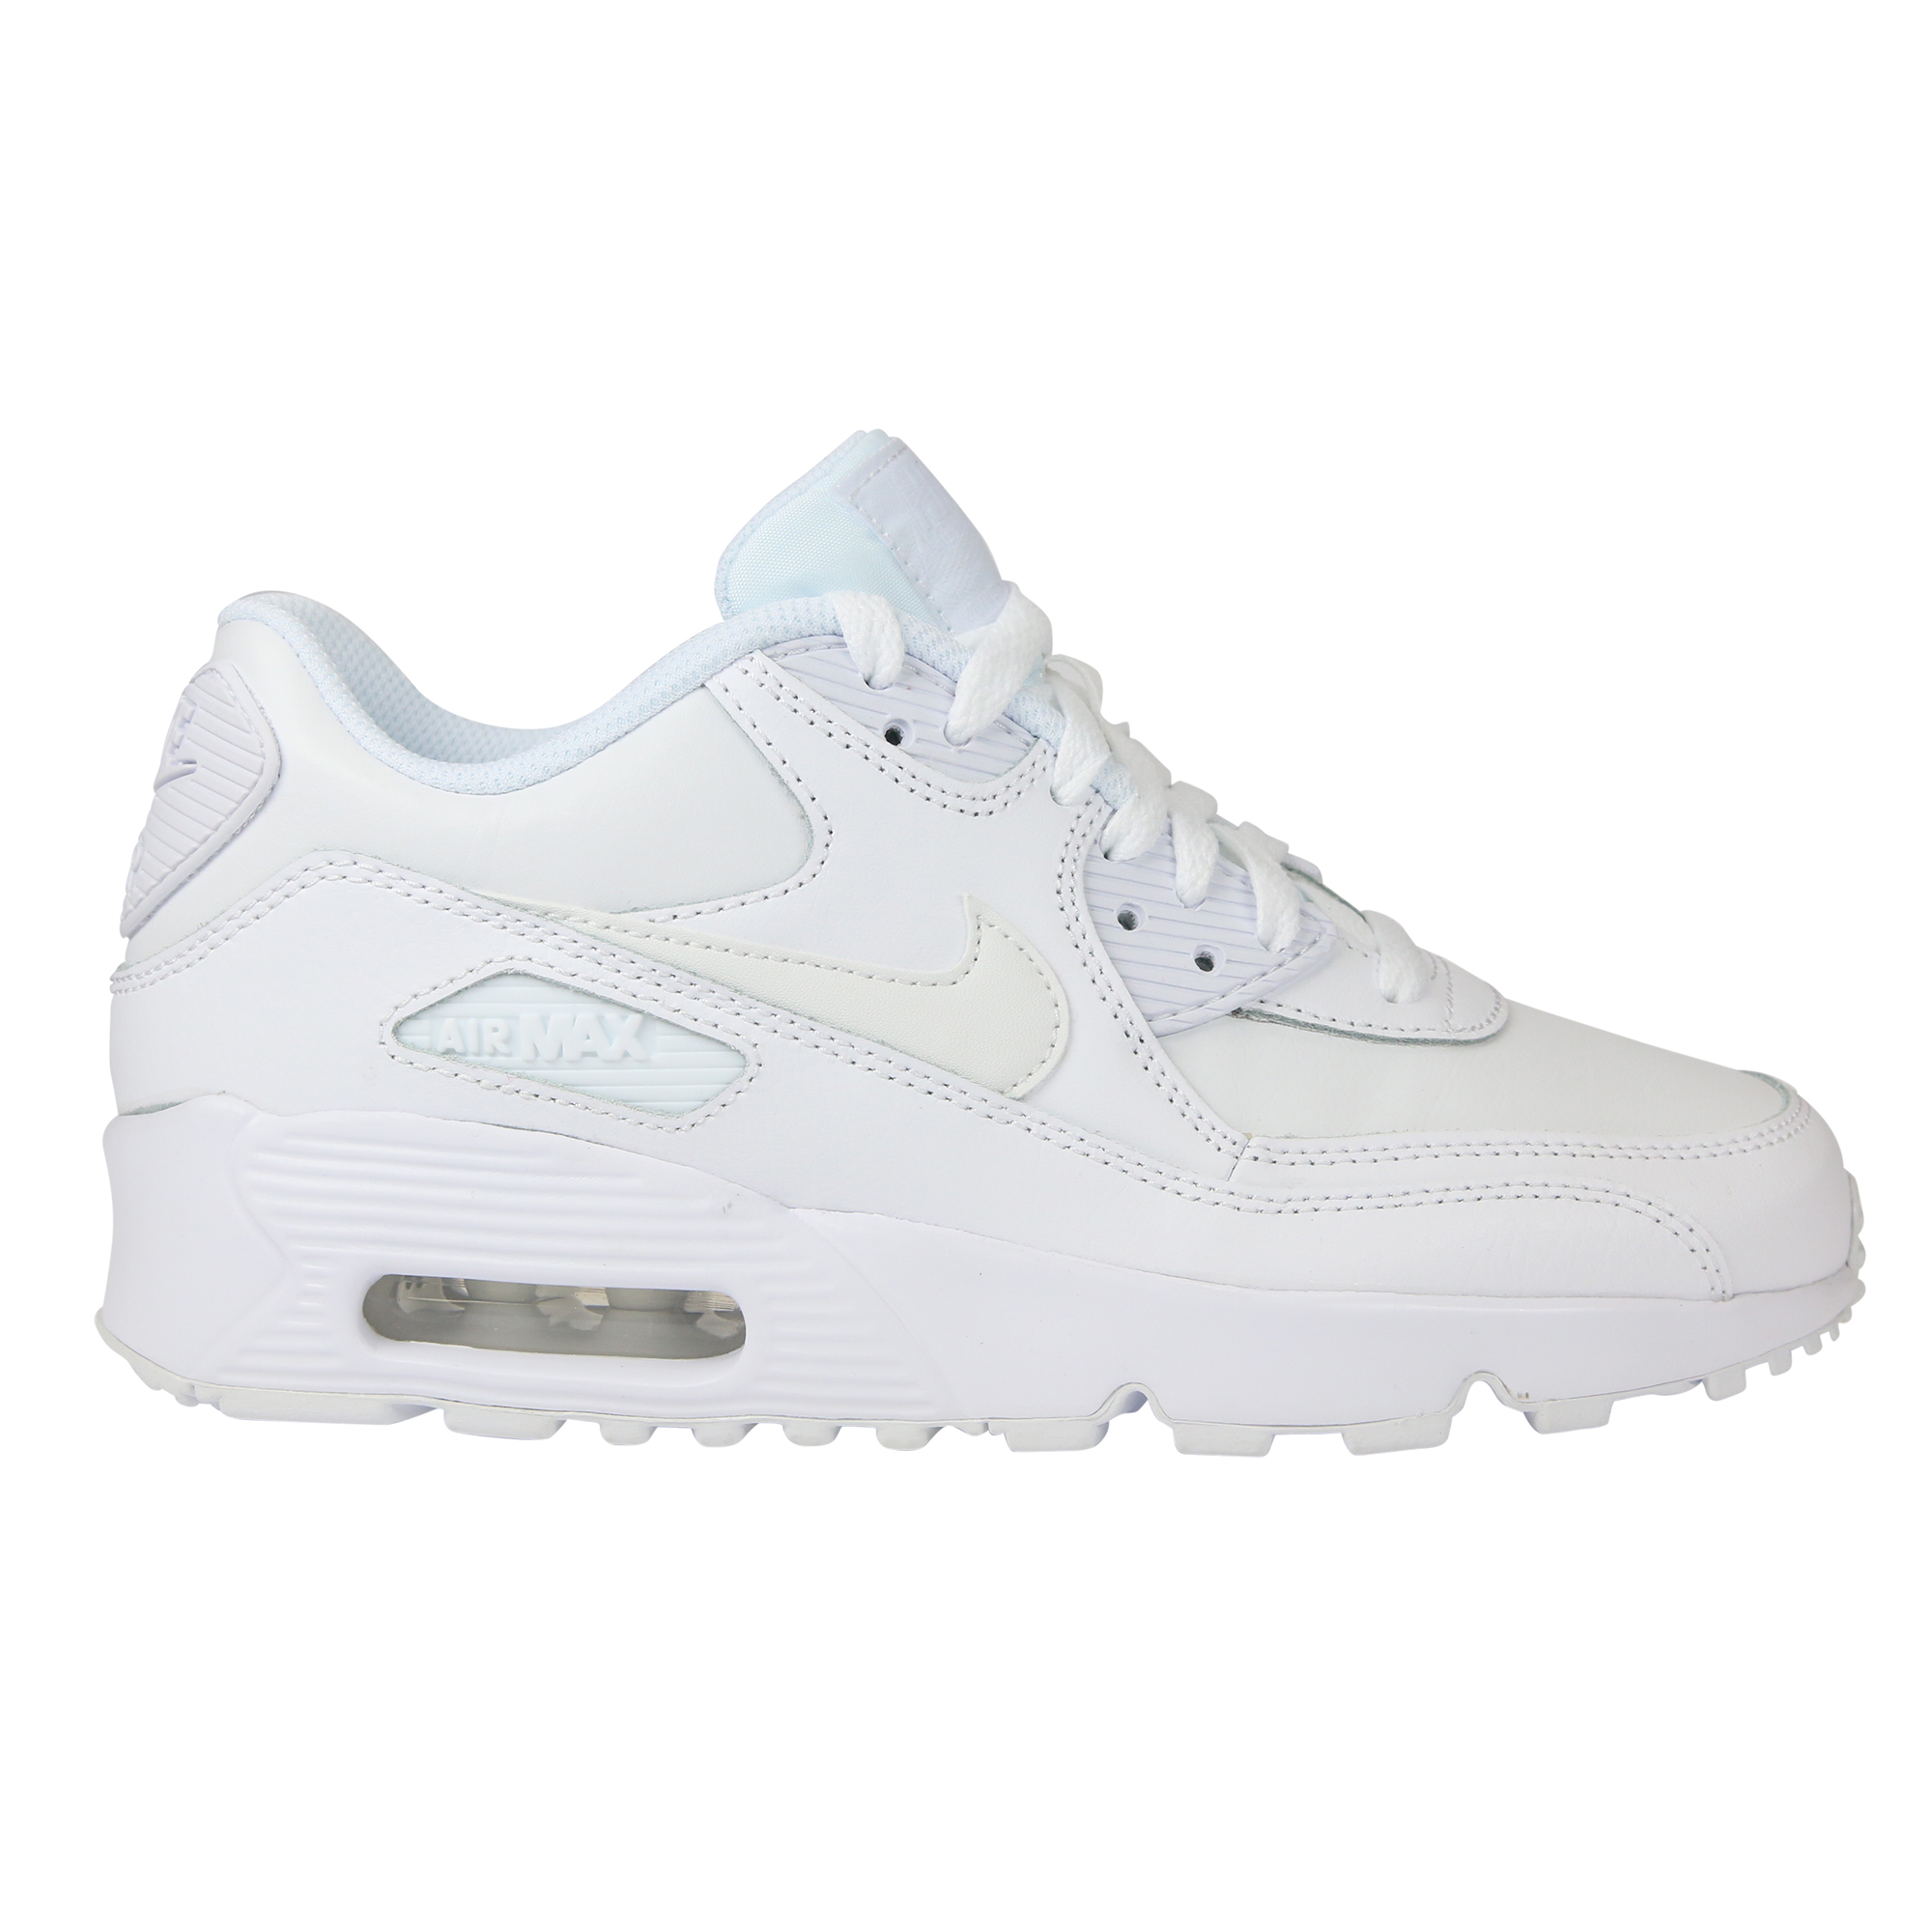 Nike Air Max 90 Leather (GS) Schuhe Turnschuhe Sneaker Kinder Damen ...